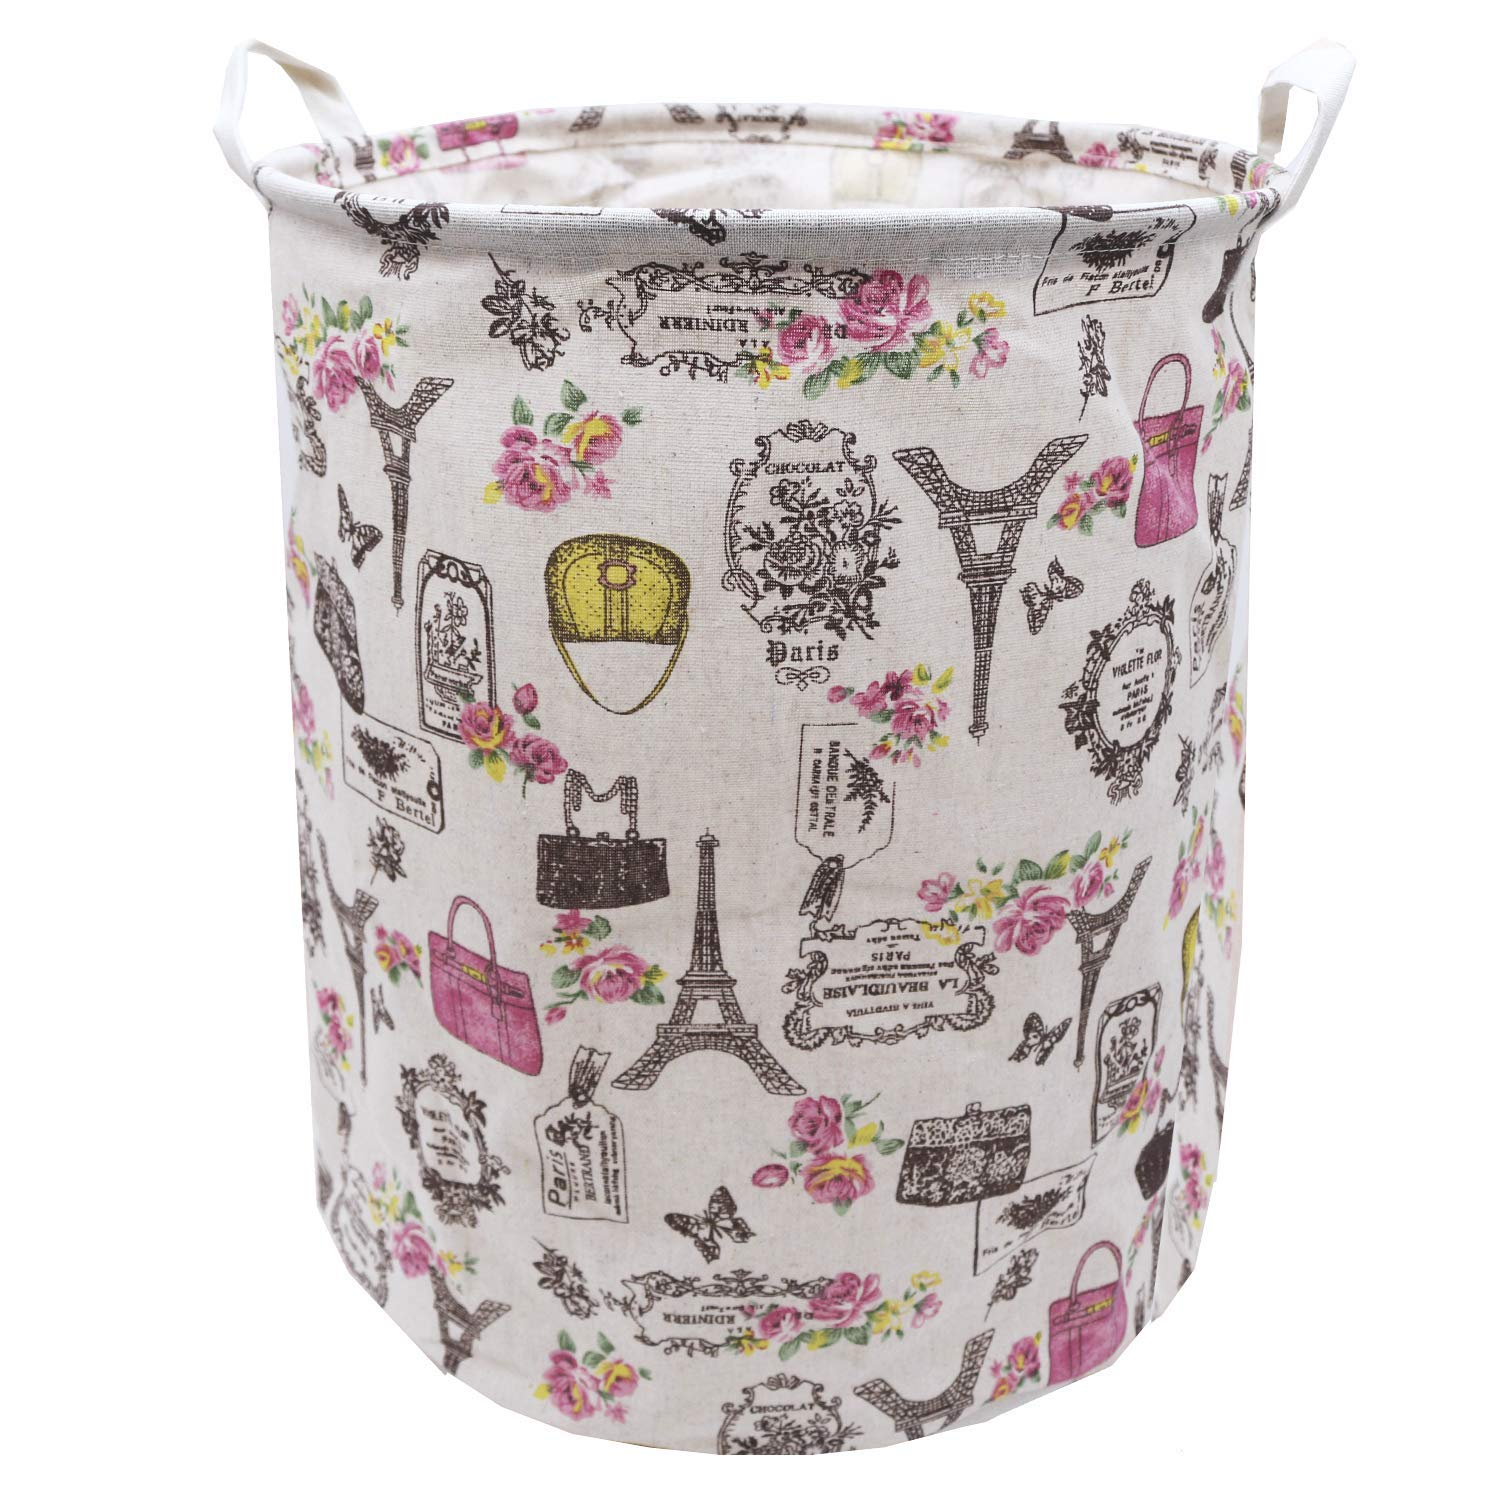 Laundry Hamper Collapsible Storage Bin 19.7 x 15.7 Inch, Munzong Waterproof Canvas Linen Organizer Clothes Large Laundry Basket for Baby Nursery, Kids Girls Room, Office, College Dorm (Eiffel Tower)